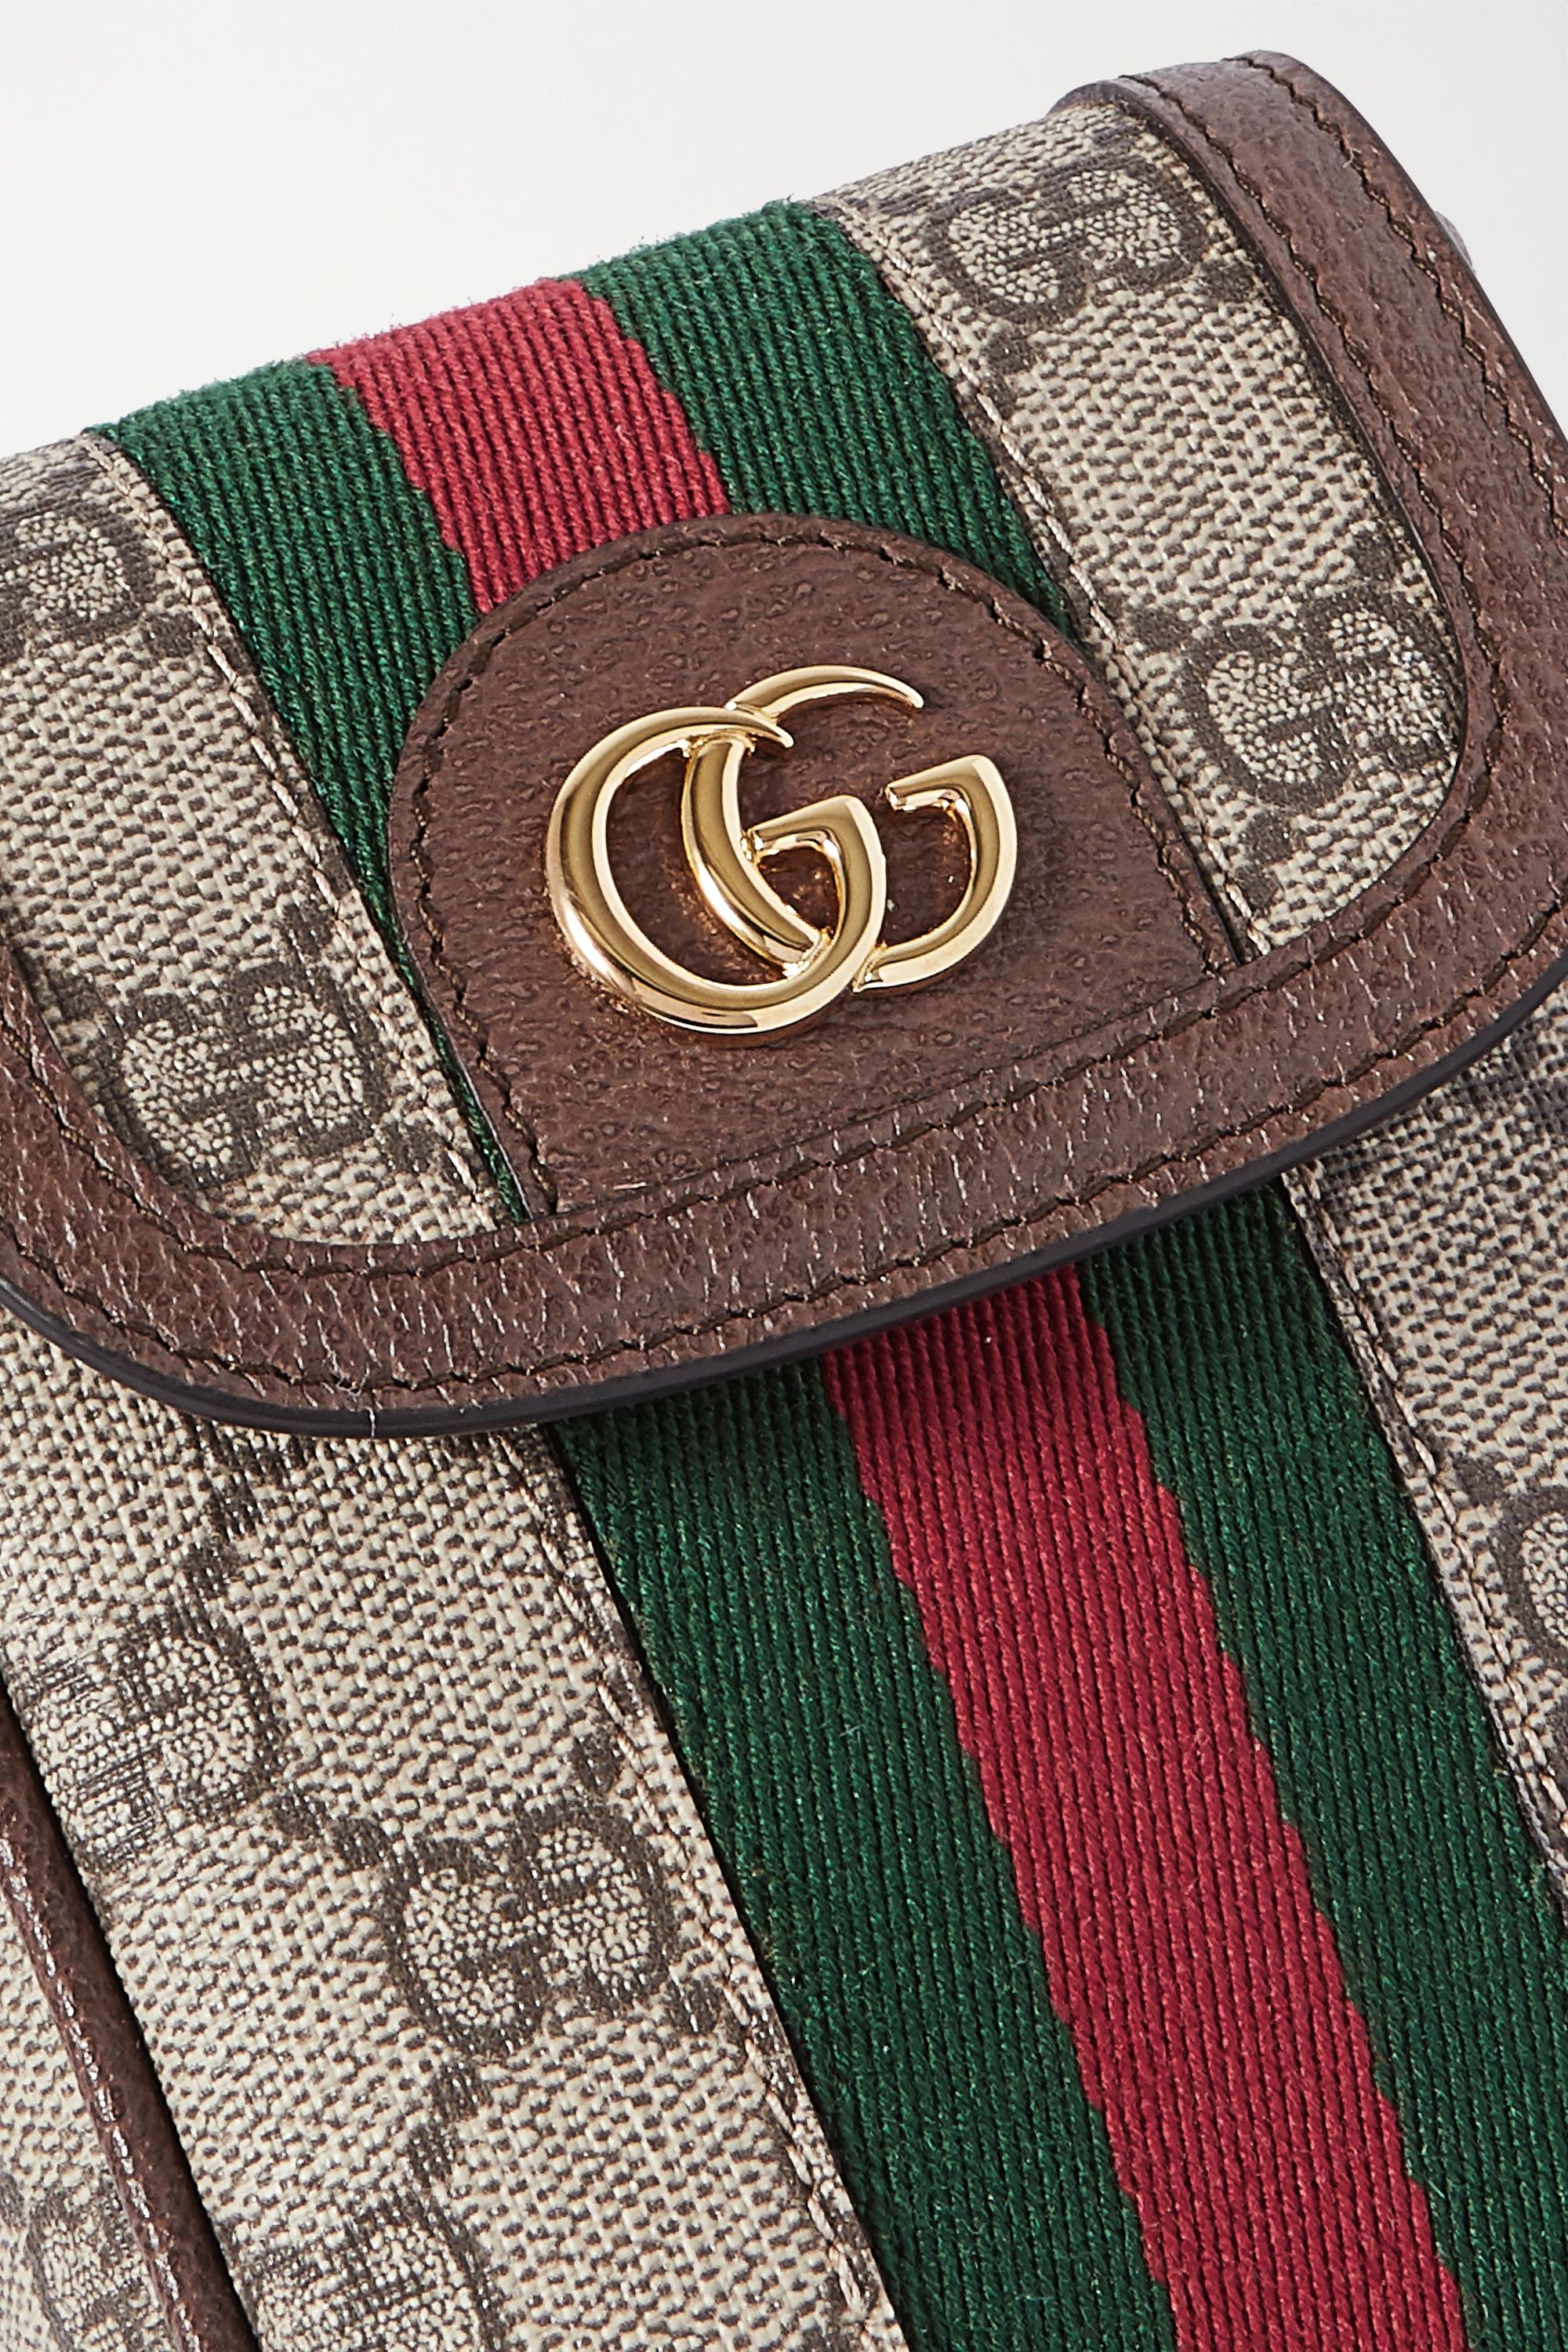 Gucci Ophidia leather-trimmed printed coated-canvas shoulder bag